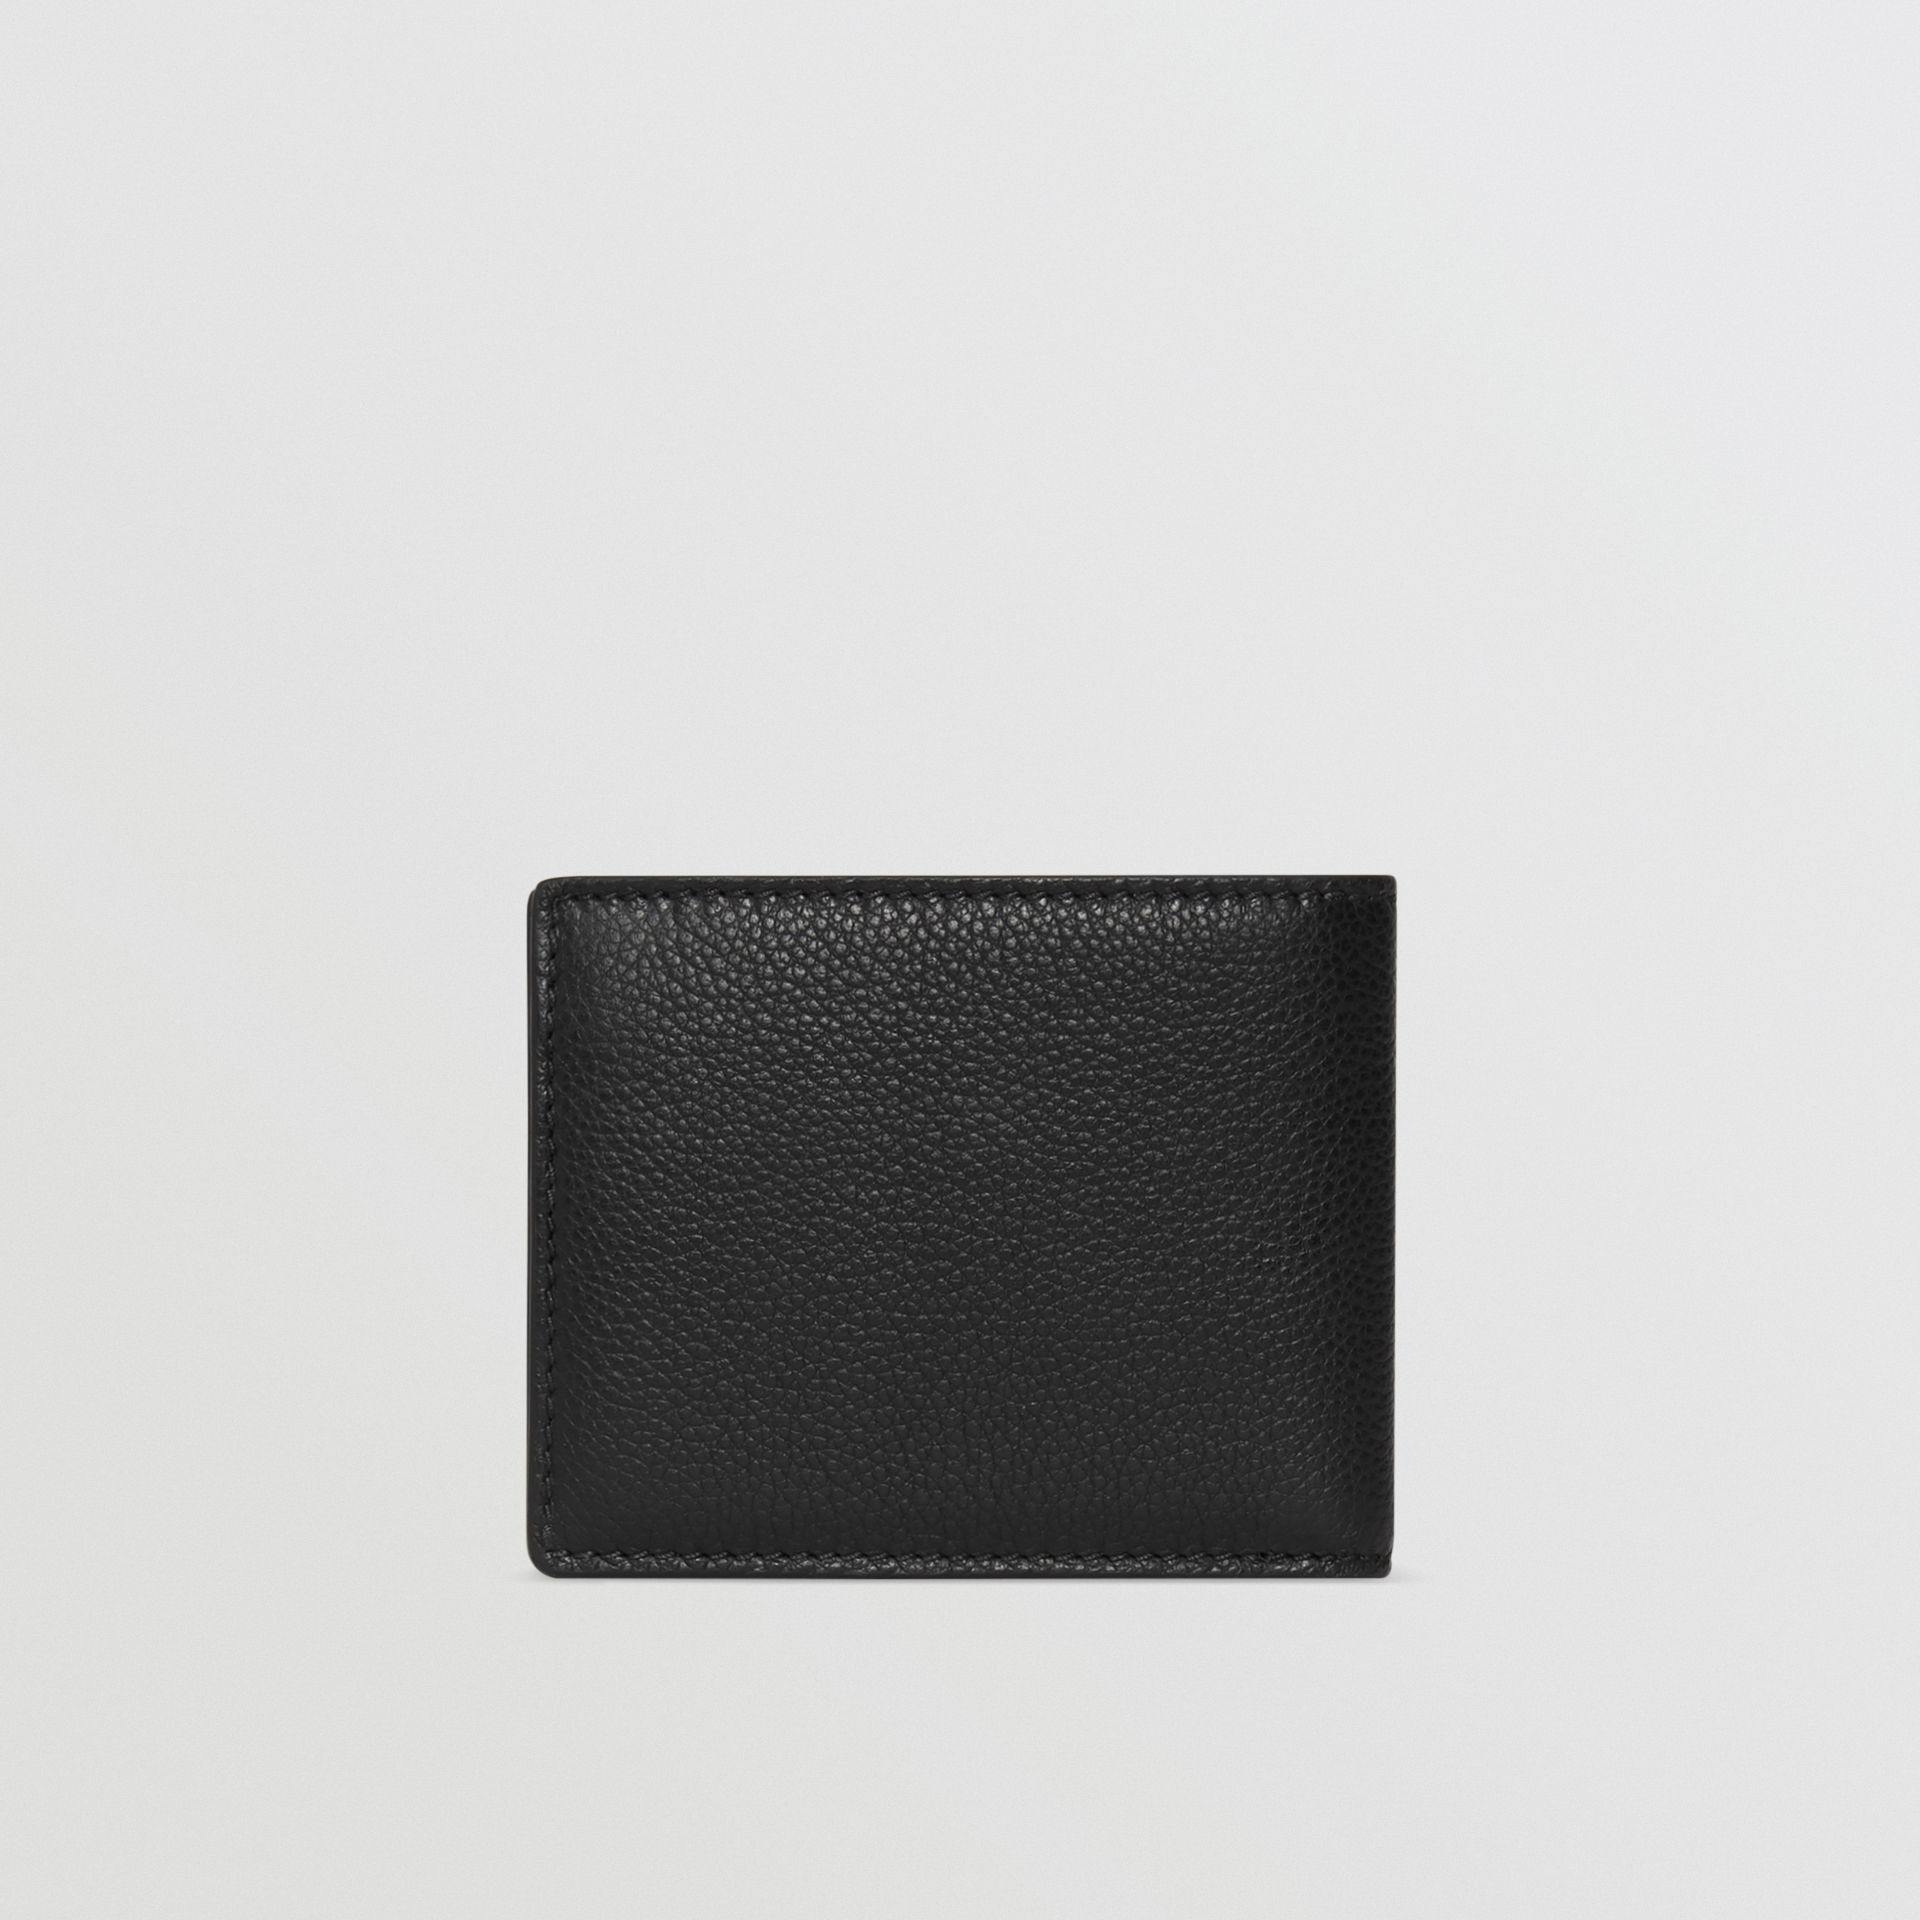 Grainy Leather Bifold Wallet in Black - Men | Burberry Australia - gallery image 5